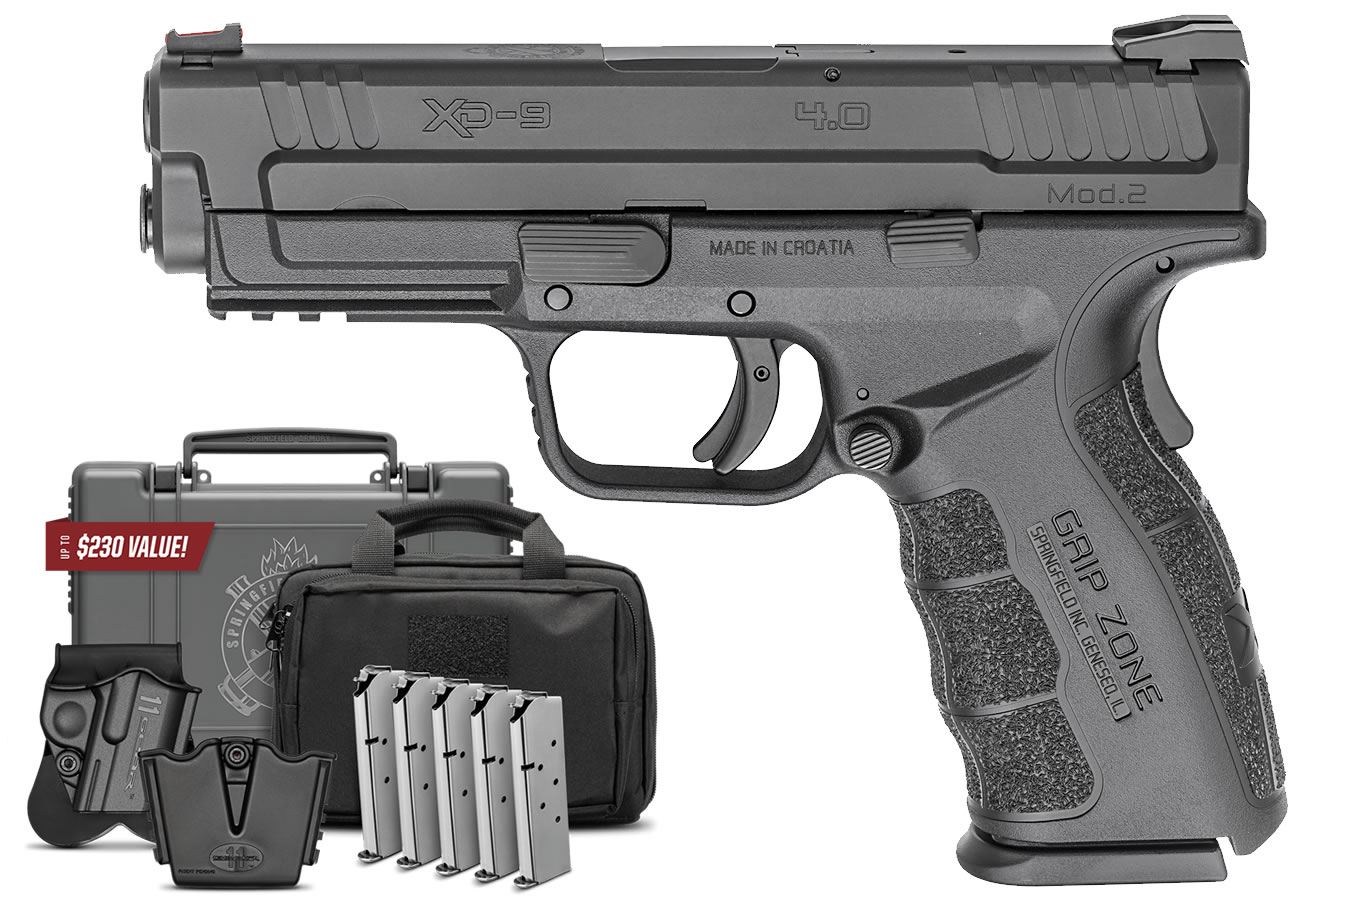 No. 12 Best Selling: SPRINGFIELD XD MOD.2 9MM 4.0 SERVICE MODEL WITH INSTANT GEAR UP PACKAGE